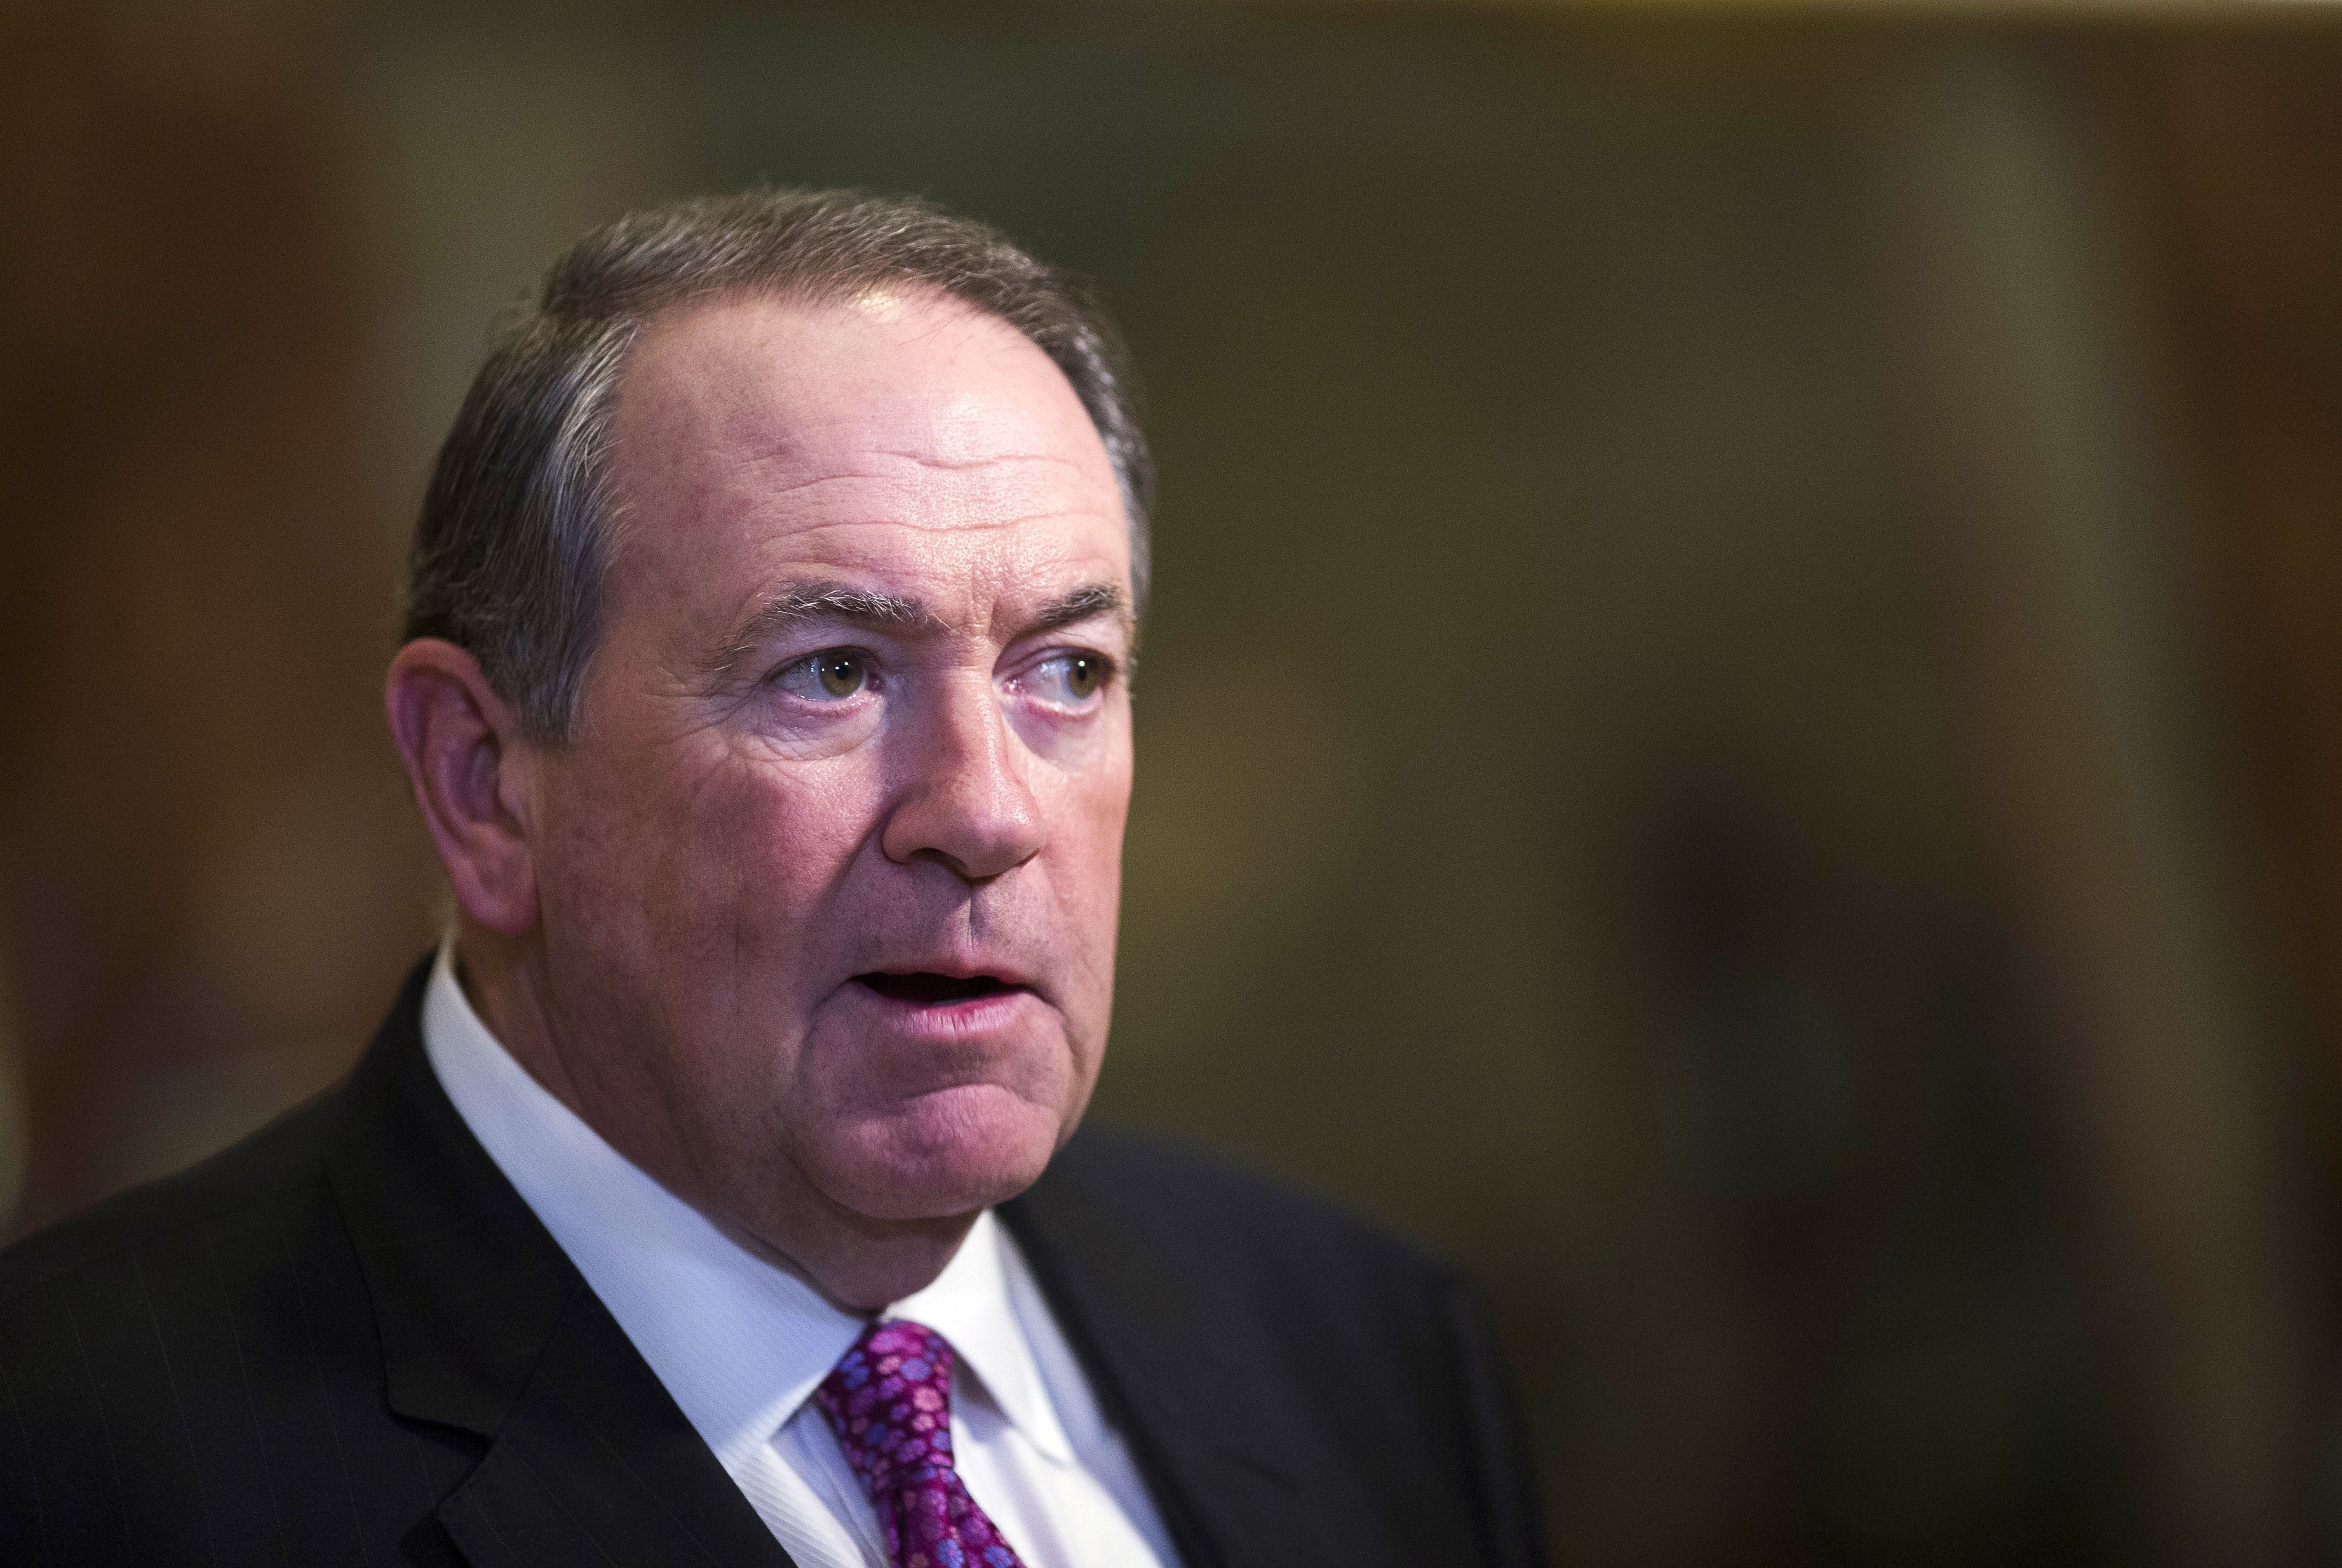 Mike Huckabee, former governor of Arkansas, speaks to members of the media in the lobby of Trump Tower in New York, U.S., on Friday, Nov. 18, 2016. Donald Trump on Friday selected Alabama Senator Jeff Sessions as his attorney general, elevating one of his earliest congressional backers and one of the most conservative U.S. lawmakers to serve as the nation's top law enforcement official. Photographer: John Taggart/Bloomberg via Getty Images